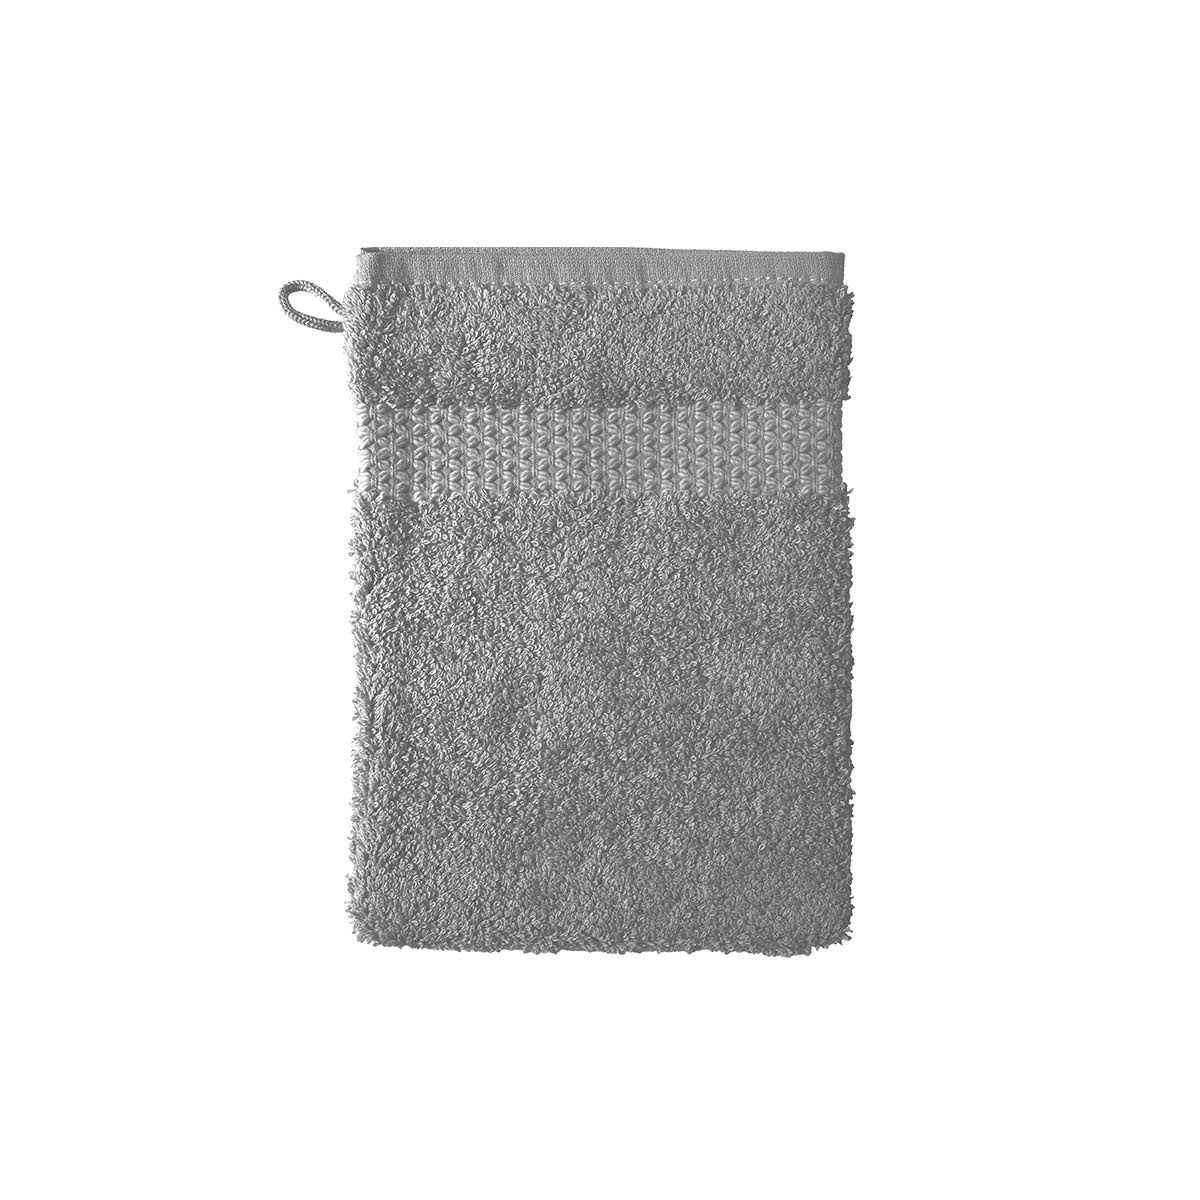 Etoile Platine Bath Collection by Yves Delorme | Fig Linens - Gray bath linen, wash mitt